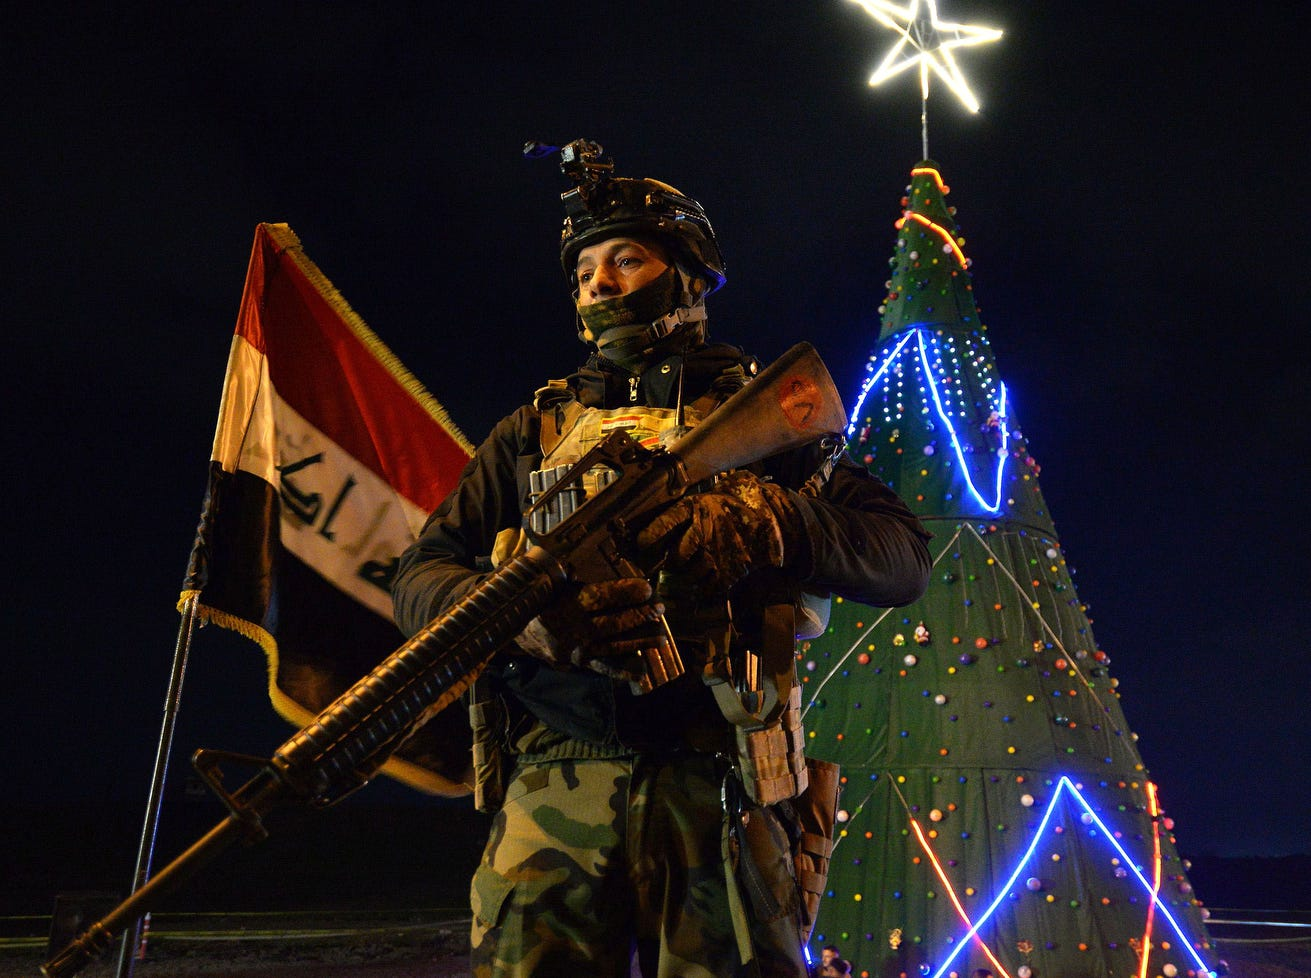 An Iraqi soldier stands guard the street during celebrations for new year's eve in Mosul on Dec. 31, 2018.